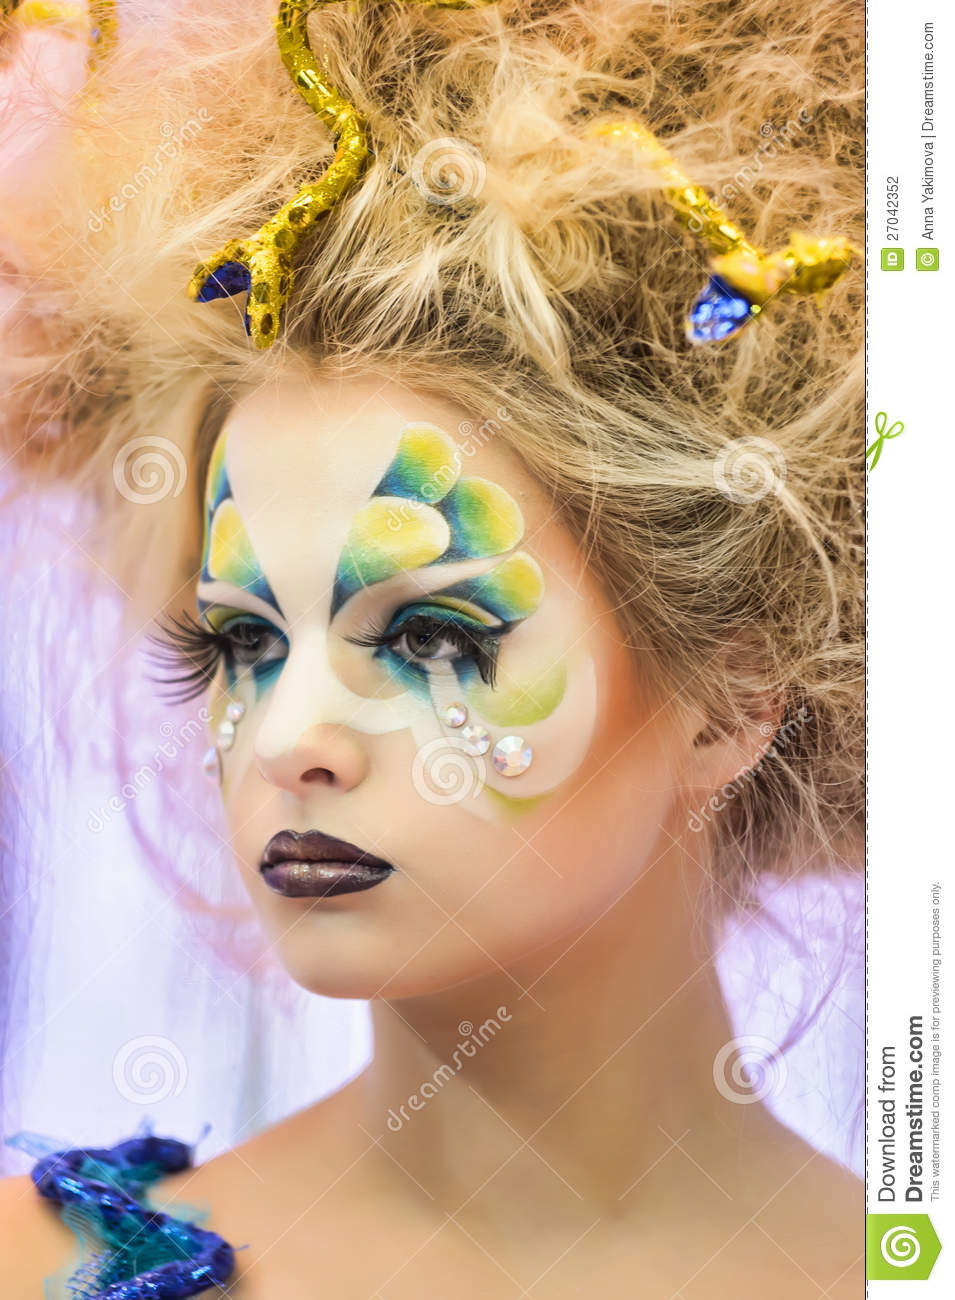 Beauty Make Up: Creative Makeup Show At The Festival Of Beauty Editorial